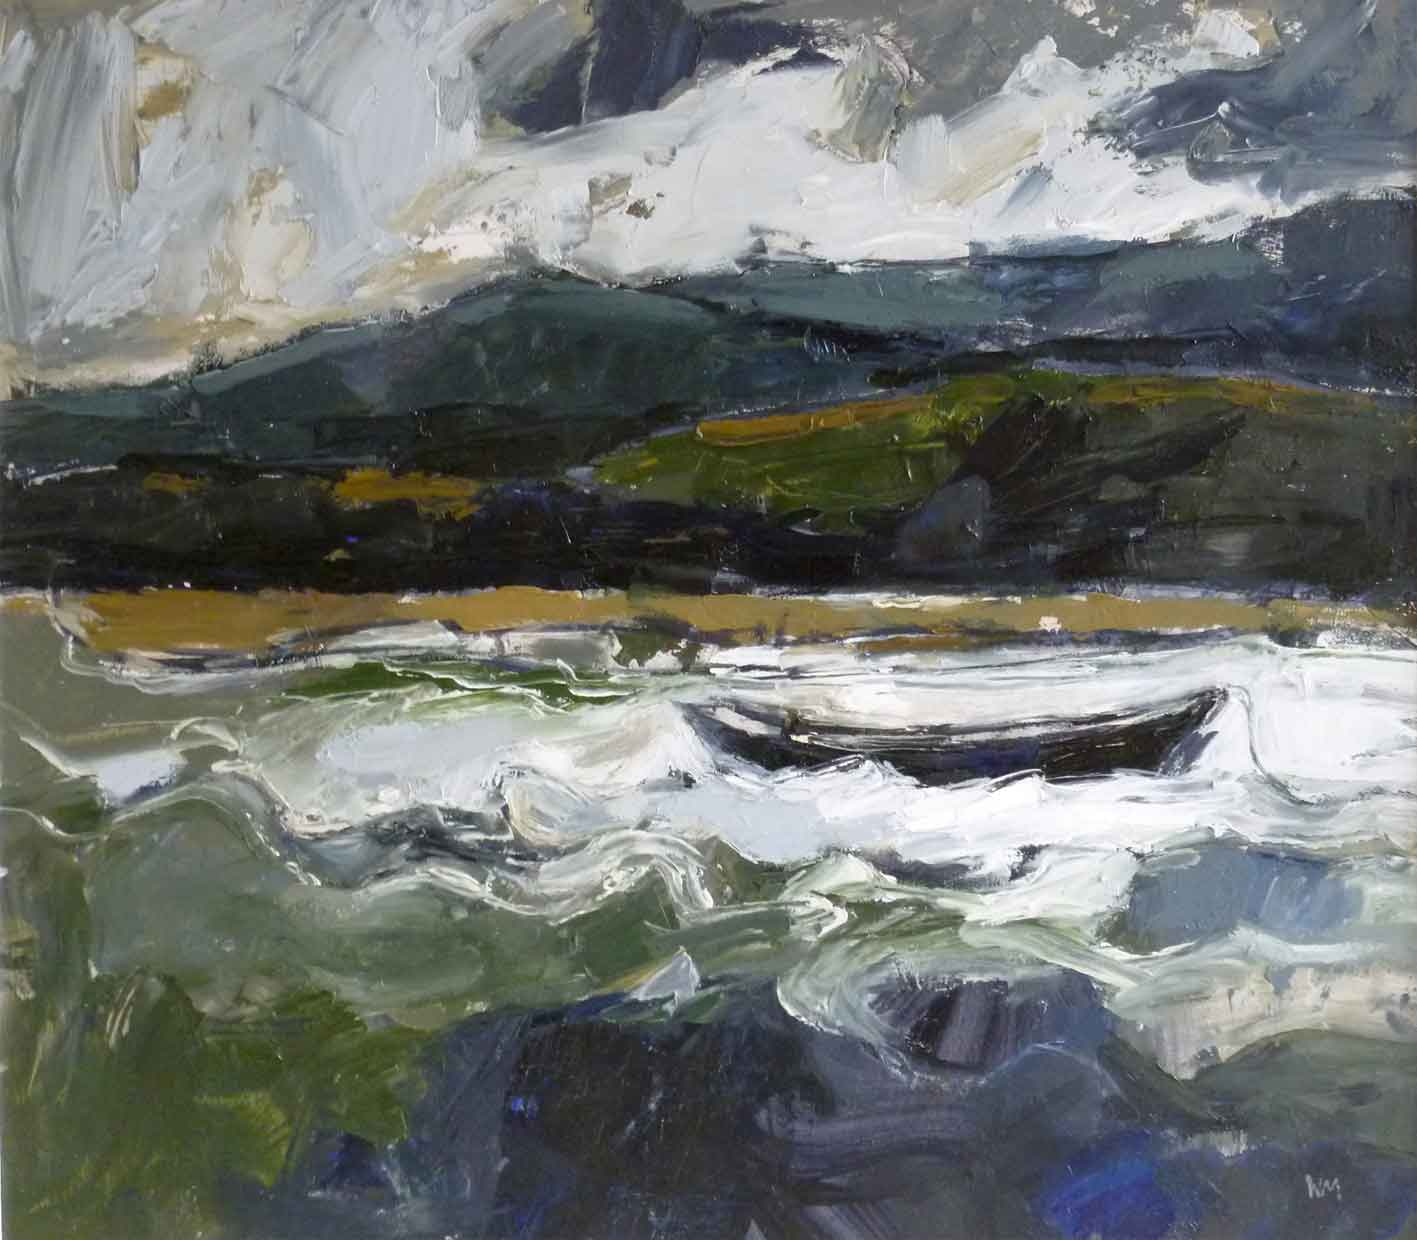 Wendy Murphy - Winter Estuary - Oil on Board - 18 x 20 inches